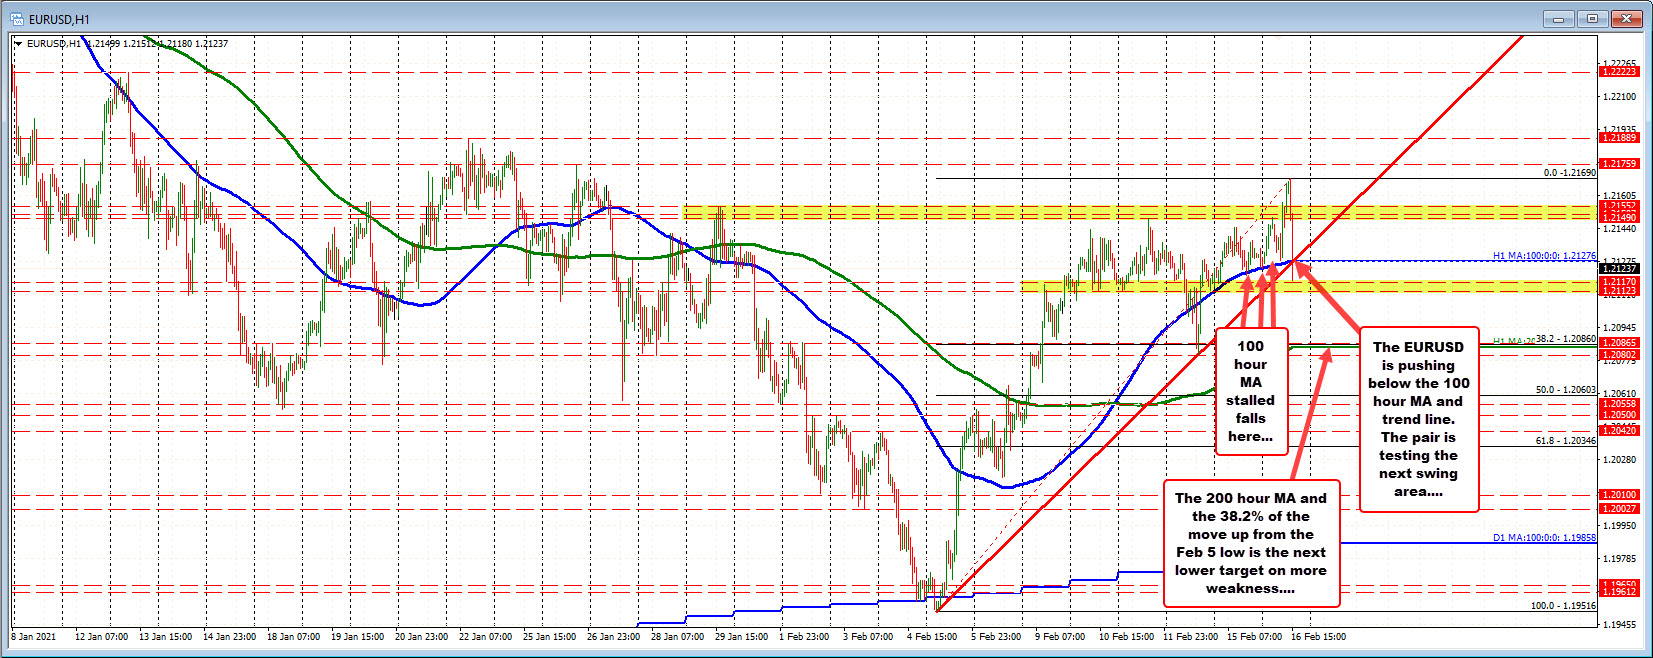 Photo of EURUSD goes up and down. Go back under the 100 hour MA